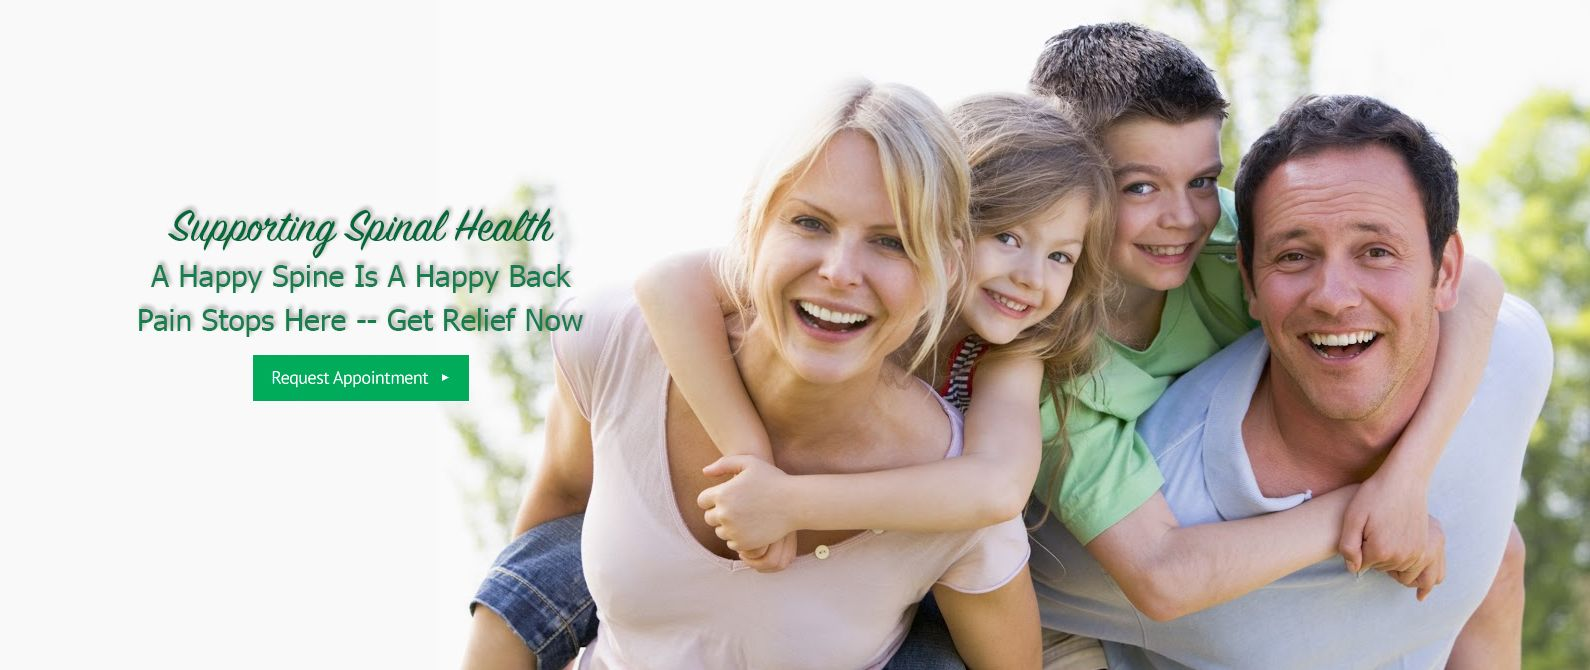 Chiropractor Way To A Good Health Chiropractic care